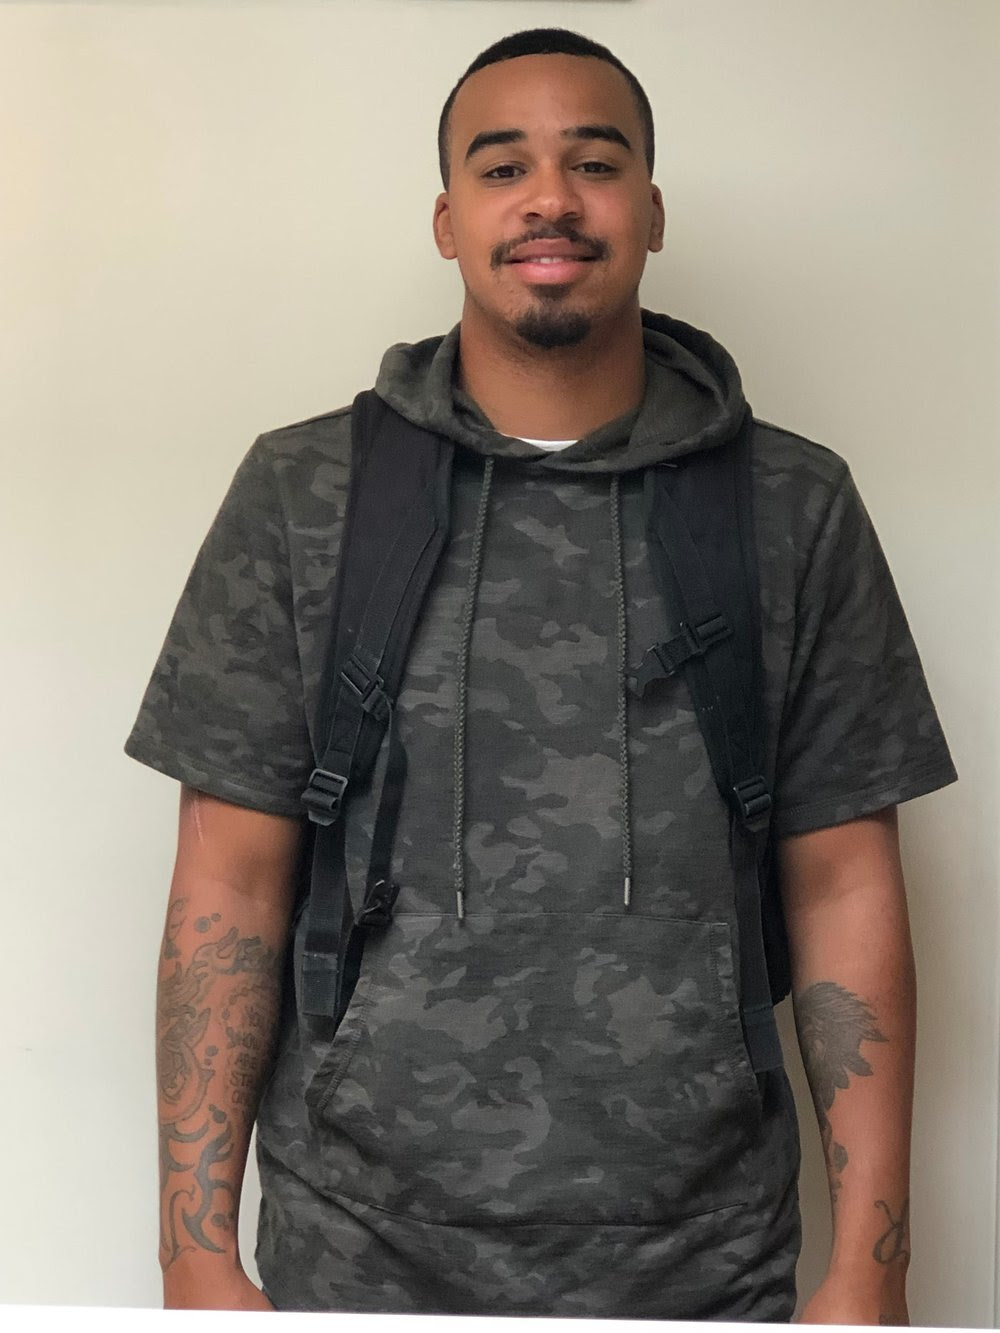 - Student Spotlight: Jeffrey RamosProgram: Pre-Apprentice, February 2019Q: What brought you to YouthBuild Boston?A: I was going through a lot and I was in a bad place and did not have many options. YouthBuild is something that my grandmother told me about, she kept seeing it in the paper. It turned out to be a good option, saved me actually. I don't know where I would be if I didn't get into this, to be honest.Q: Who is your biggest inspiration?A: My biggest inspiration is my little brother. He just graduated from high school and has always told me to do good. He is so humble. He is going to UMASS Dartmouth to study sports management.Q: What is your favorite part about the PA program?A: Being able to work with my hands. Through the program I got my OSHA 10 card and the work experience on the construction site has given me an advantage on my new work site. I'm in a Commercial Union, my local is 327, and right now I'm working near Forest Hills on a residential project. At my new location I have met other apprentices that have yet to get their OSHA cards. YouthBuild has definitely gives me a step ahead in the workplace. Now I'm working towards becoming indentured, which means becoming an official apprentice in the union.Q: What project do you remember working on?A: Through YouthBuild Boston I was able to go to a conference that was held in DC for AmeriCorps Leaders. I was able to meet people from all over the nation, I met people from California, New York even Montana. I didn't know that people actually lived in Montana! My dorm mate was from Ohio, there were just people from all over, and we still stay in touch. At the conference we were given a chance to speak about the development projects that we were on. We made a whole poster and took photos so that they could see the progress that we had made. We were a little nervous at first but it was a great experience. Hopefully I'll be on their staff list one day and get to go again.Q: Top 5 musicians… Go!A: Ed Sheeran, James Arthur, Drake, Da Baby, J ColeQ: What is the most interesting that you've learned?A: I learned that a lot of people are there to support you. When we were working at Ruskindale, a project in Hyde Park, a police officer came by the site to speak to us [students] and gave us positive affirmations about the work that we were doing in the community. Other people would also come by and tell us of all the good that we were doing, they would boost our morale. Ed, our voc instructor, would also tell us to never give up and keep going. He always kept us focused.